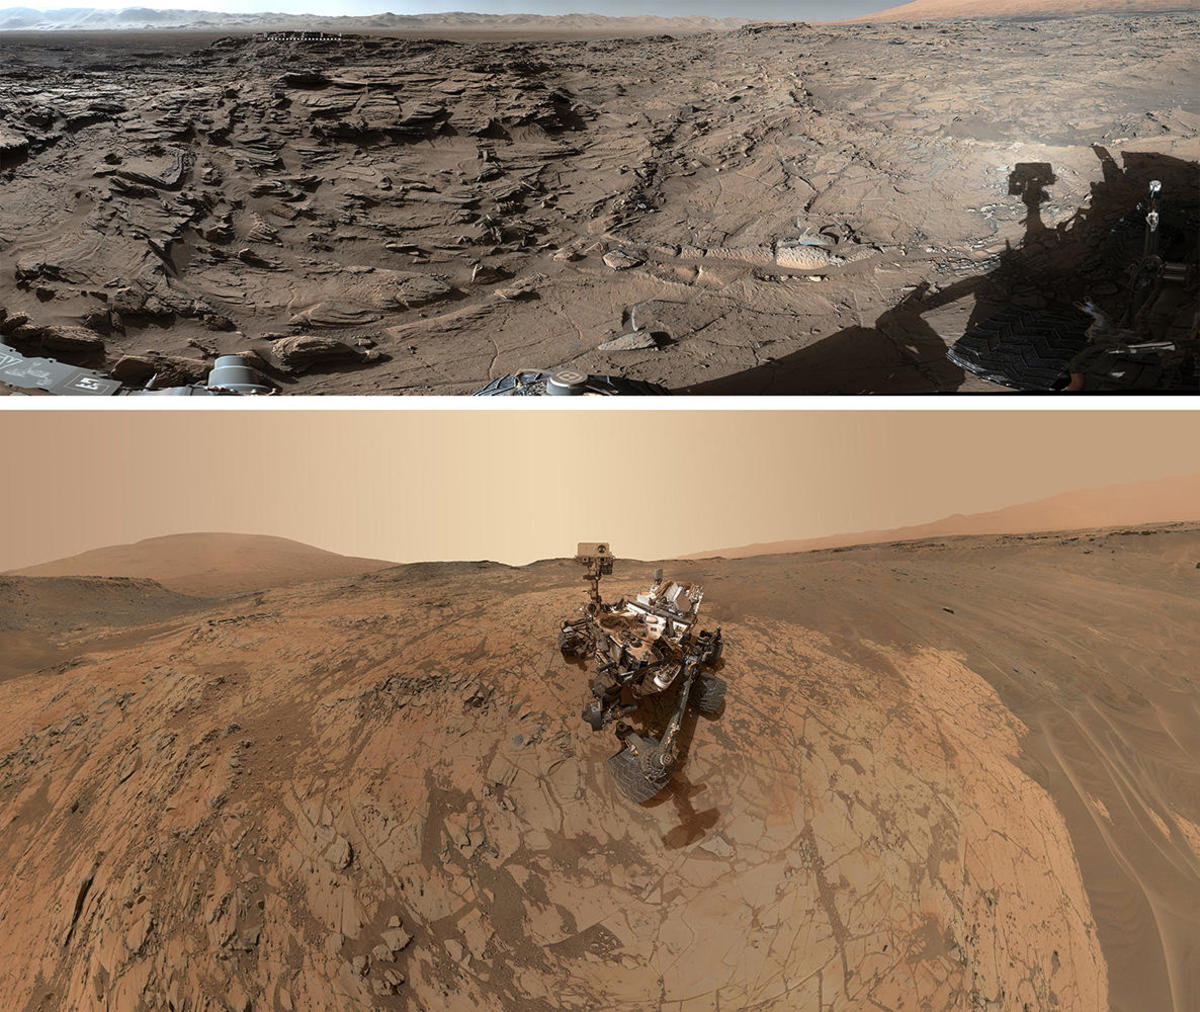 Views of Mars from the NASA's Curiosity Mars rover on April 4, 2016 and a selfie by the Curiosity rover taken January 2015. (Credit: NASA/JPL-Caltech/MSSS)